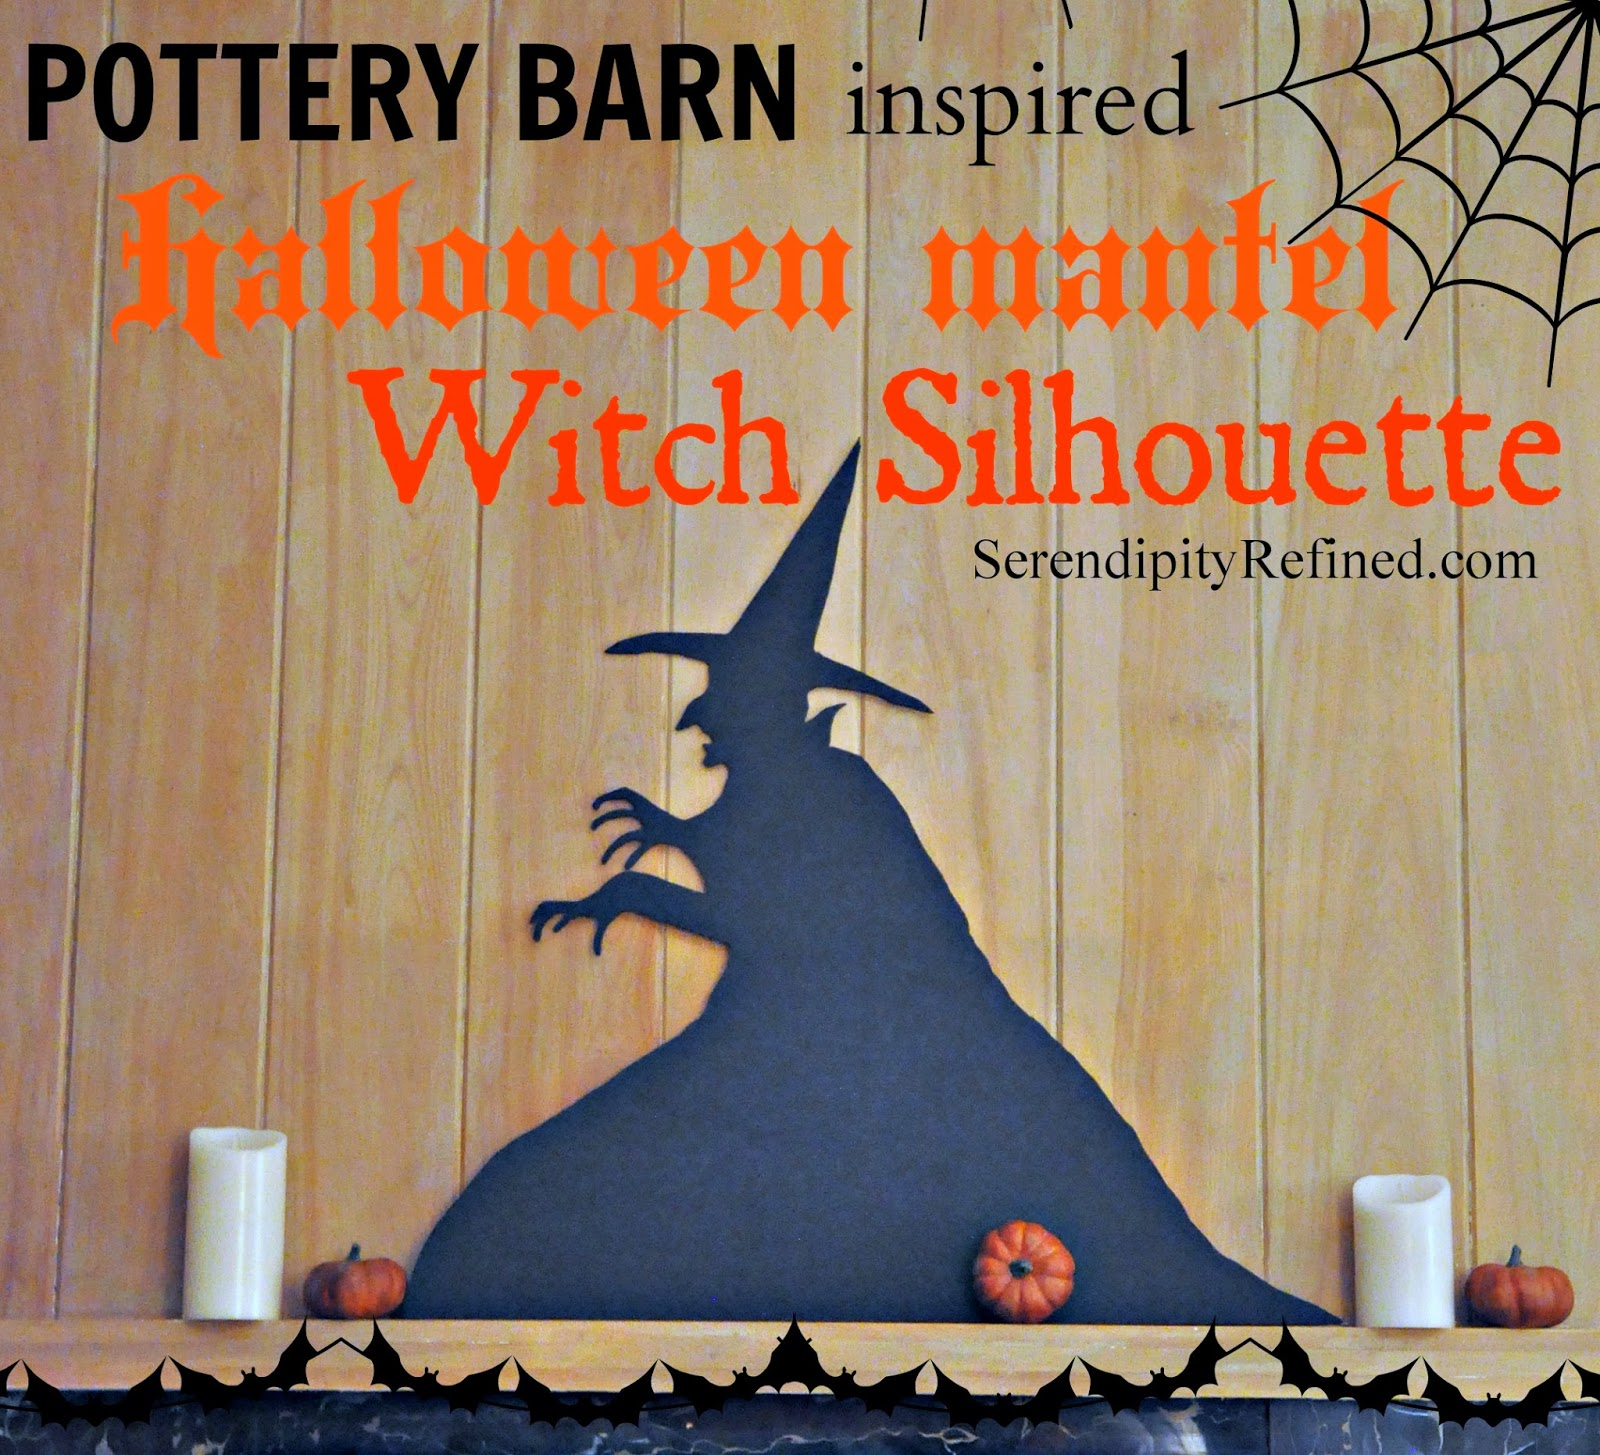 Serendipity Refined Blog: Pottery Barn Inspired Halloween